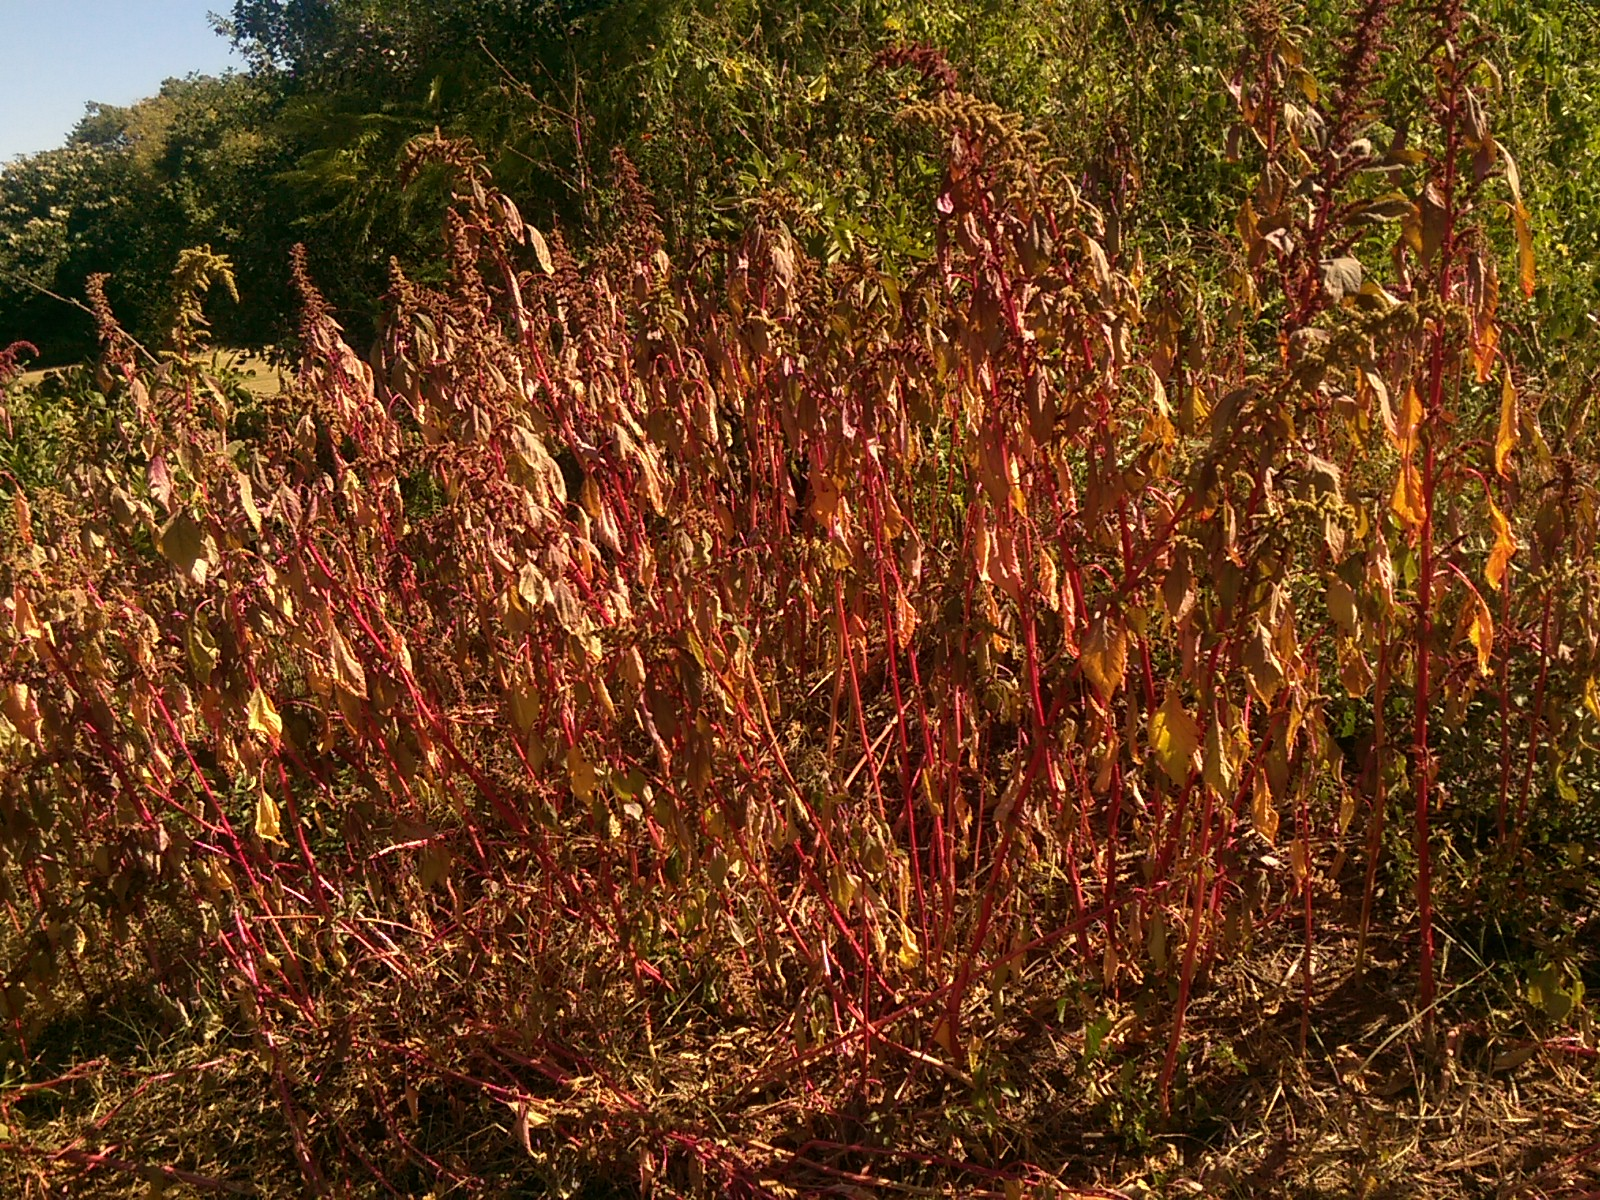 An orange and red leafy bush